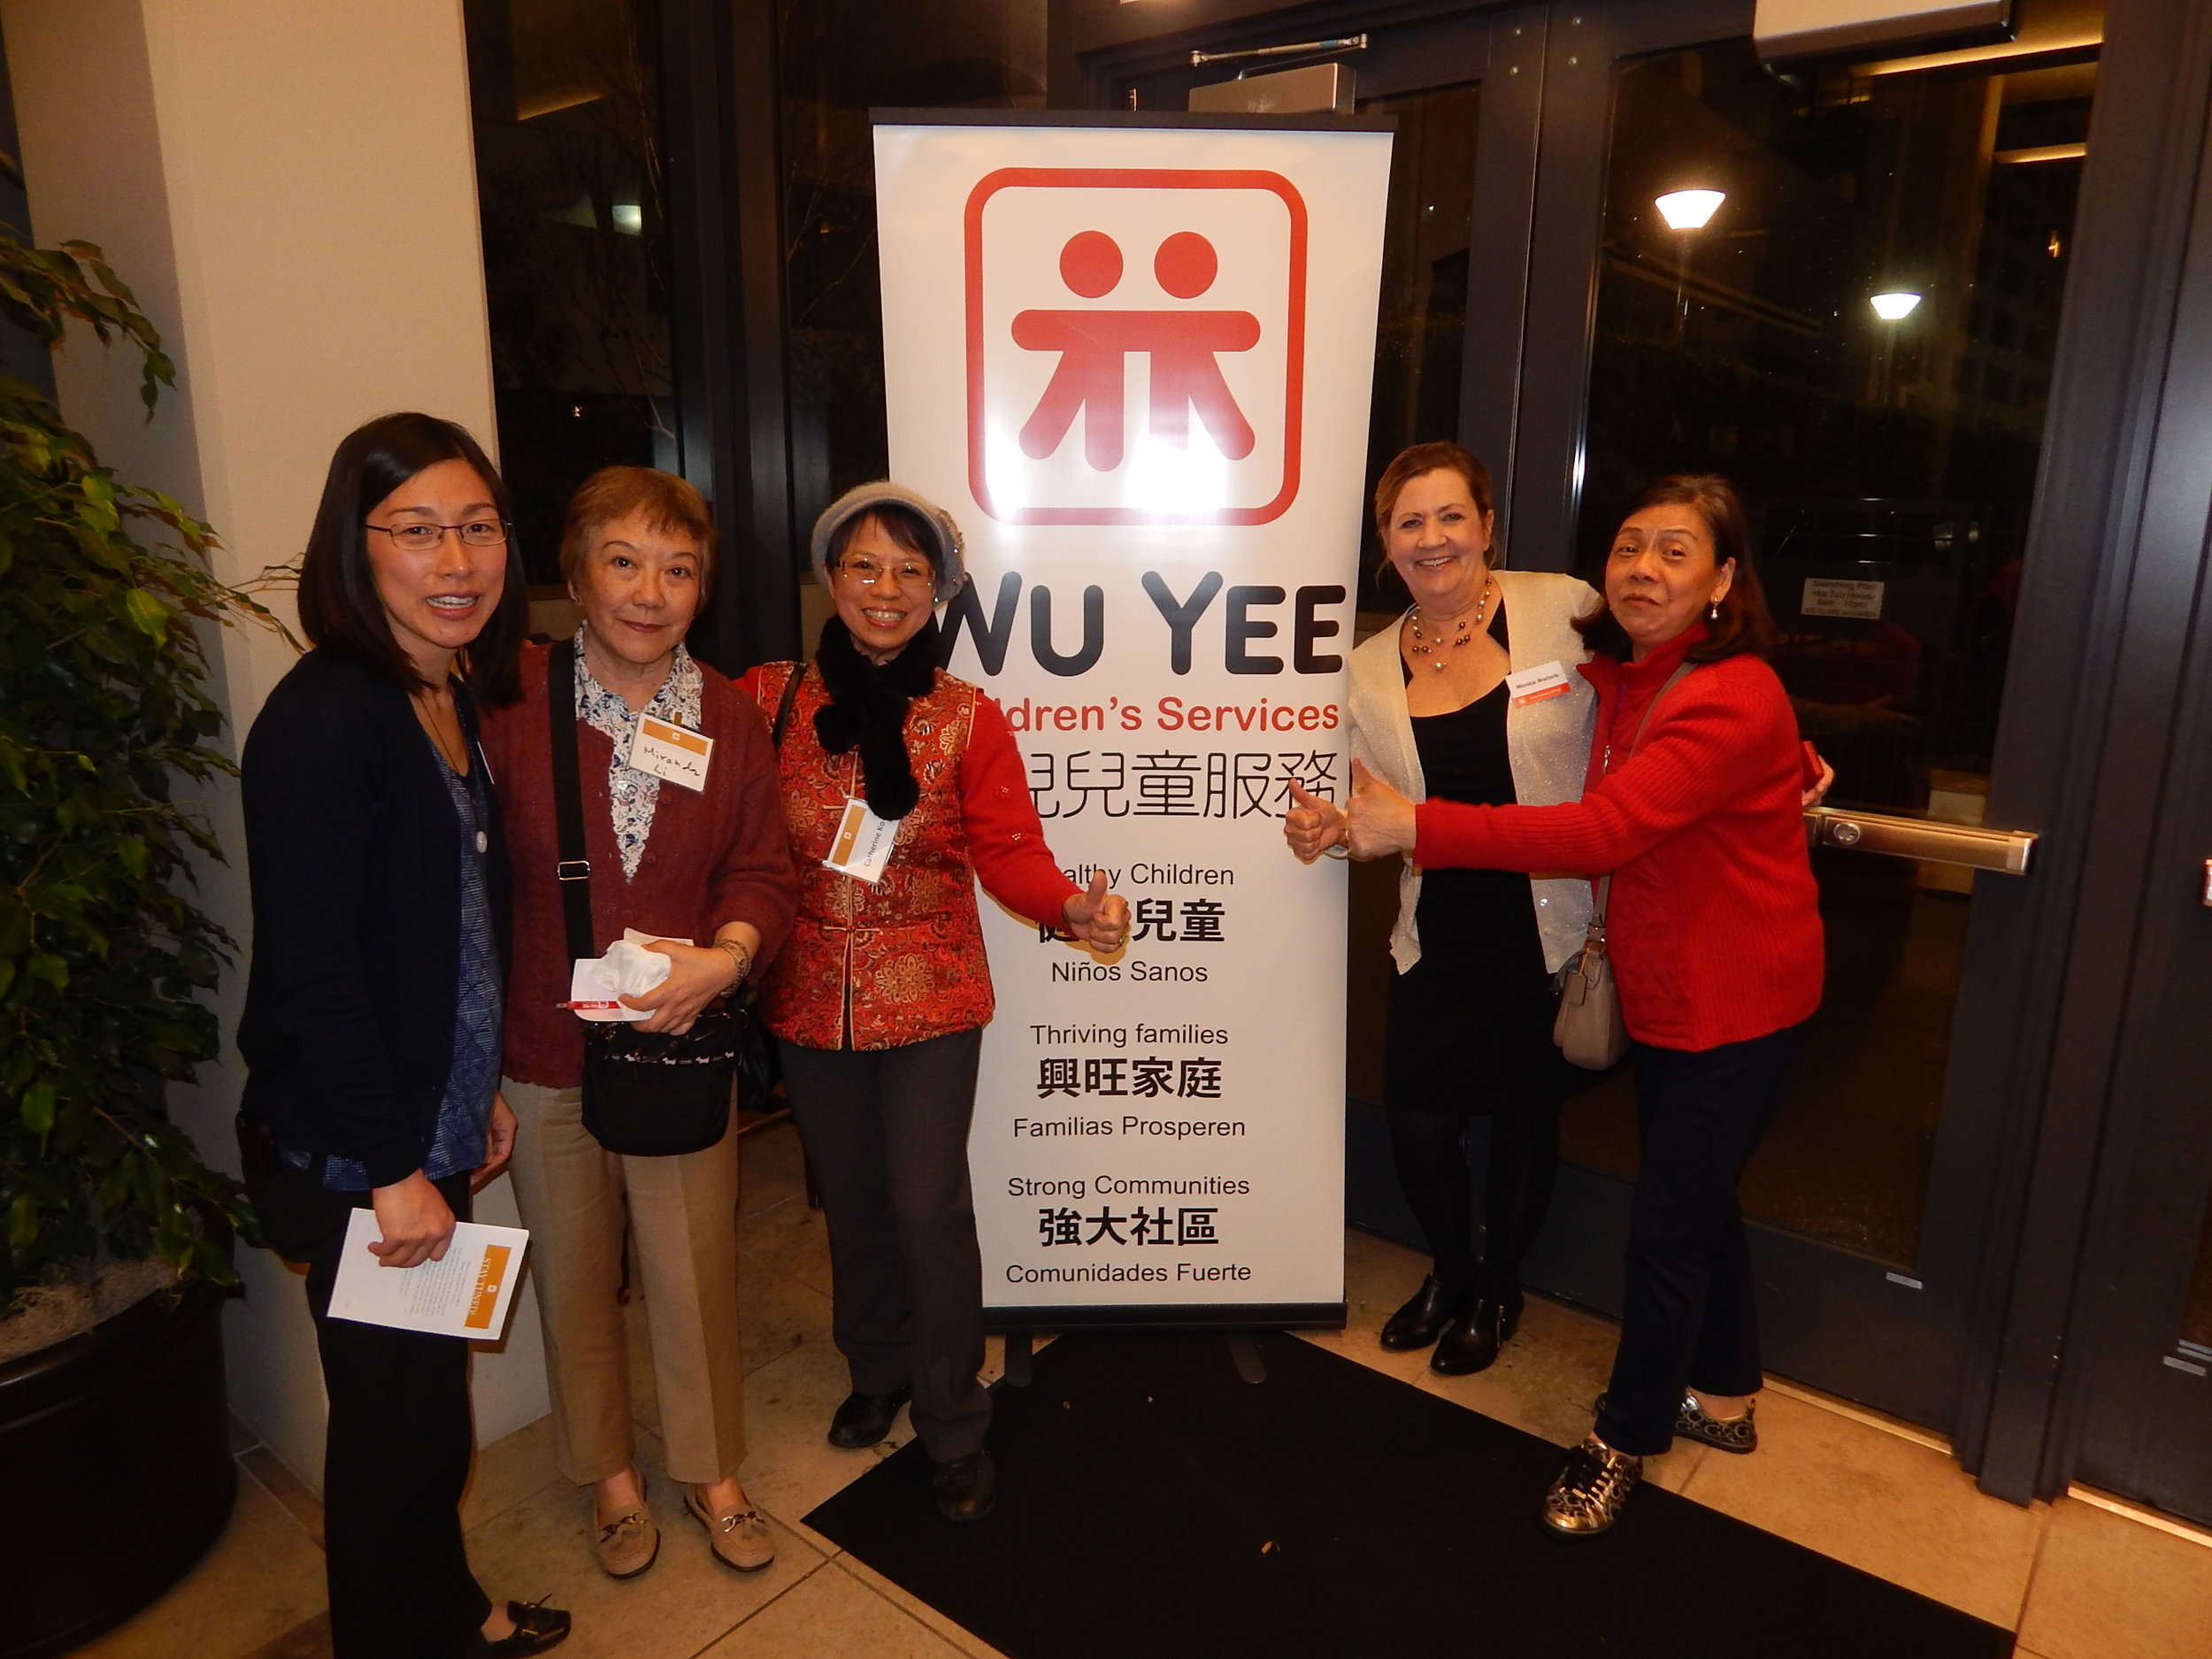 Wu Yee's Chief Programs Officer, Alyson Suzuki, and CEO, Monica Walters with some of the agency's founders the 2016 Board Reunion.